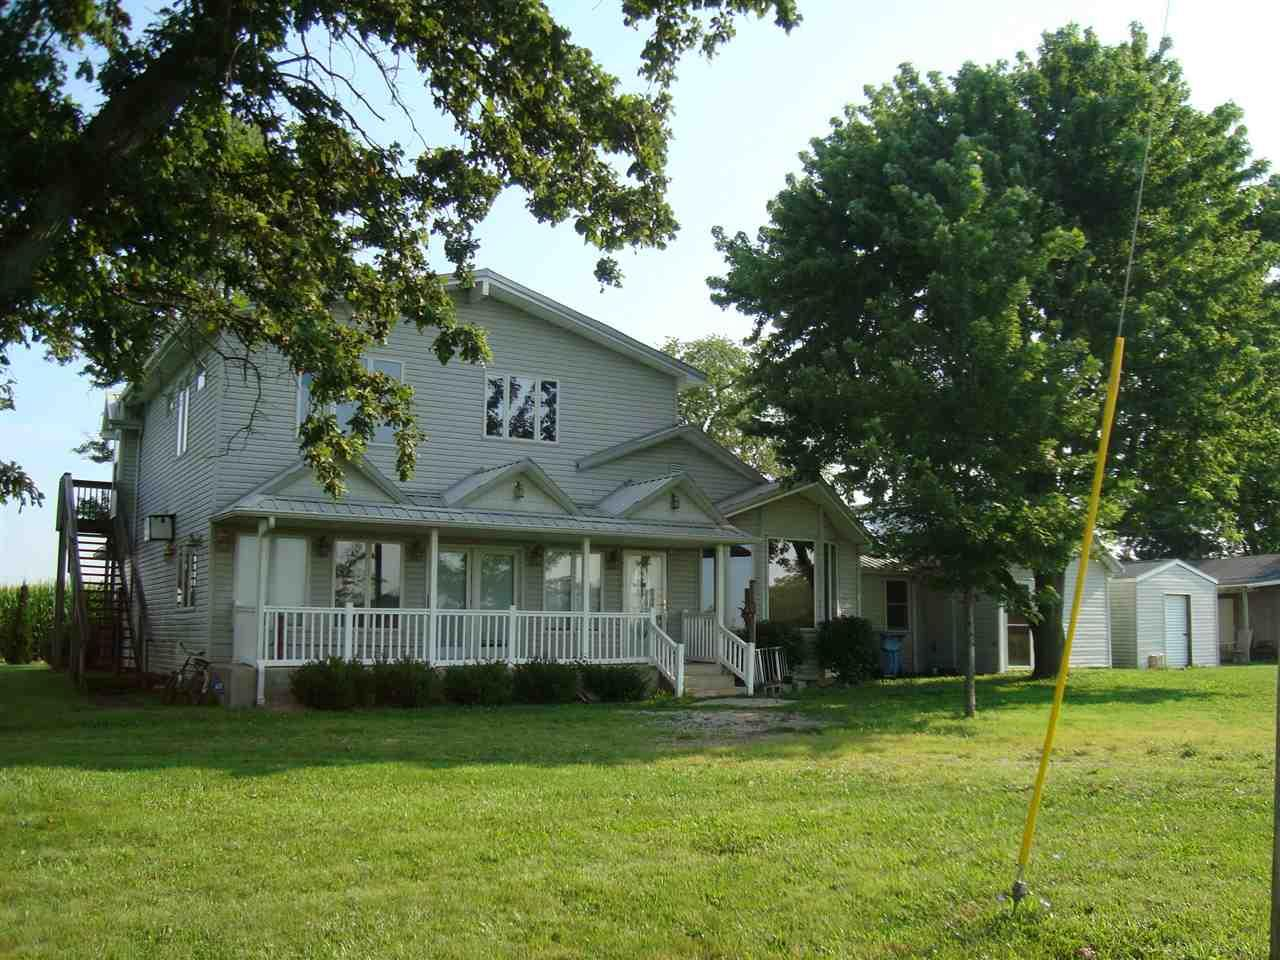 12761 S 600 EAST, Amboy, IN 46911